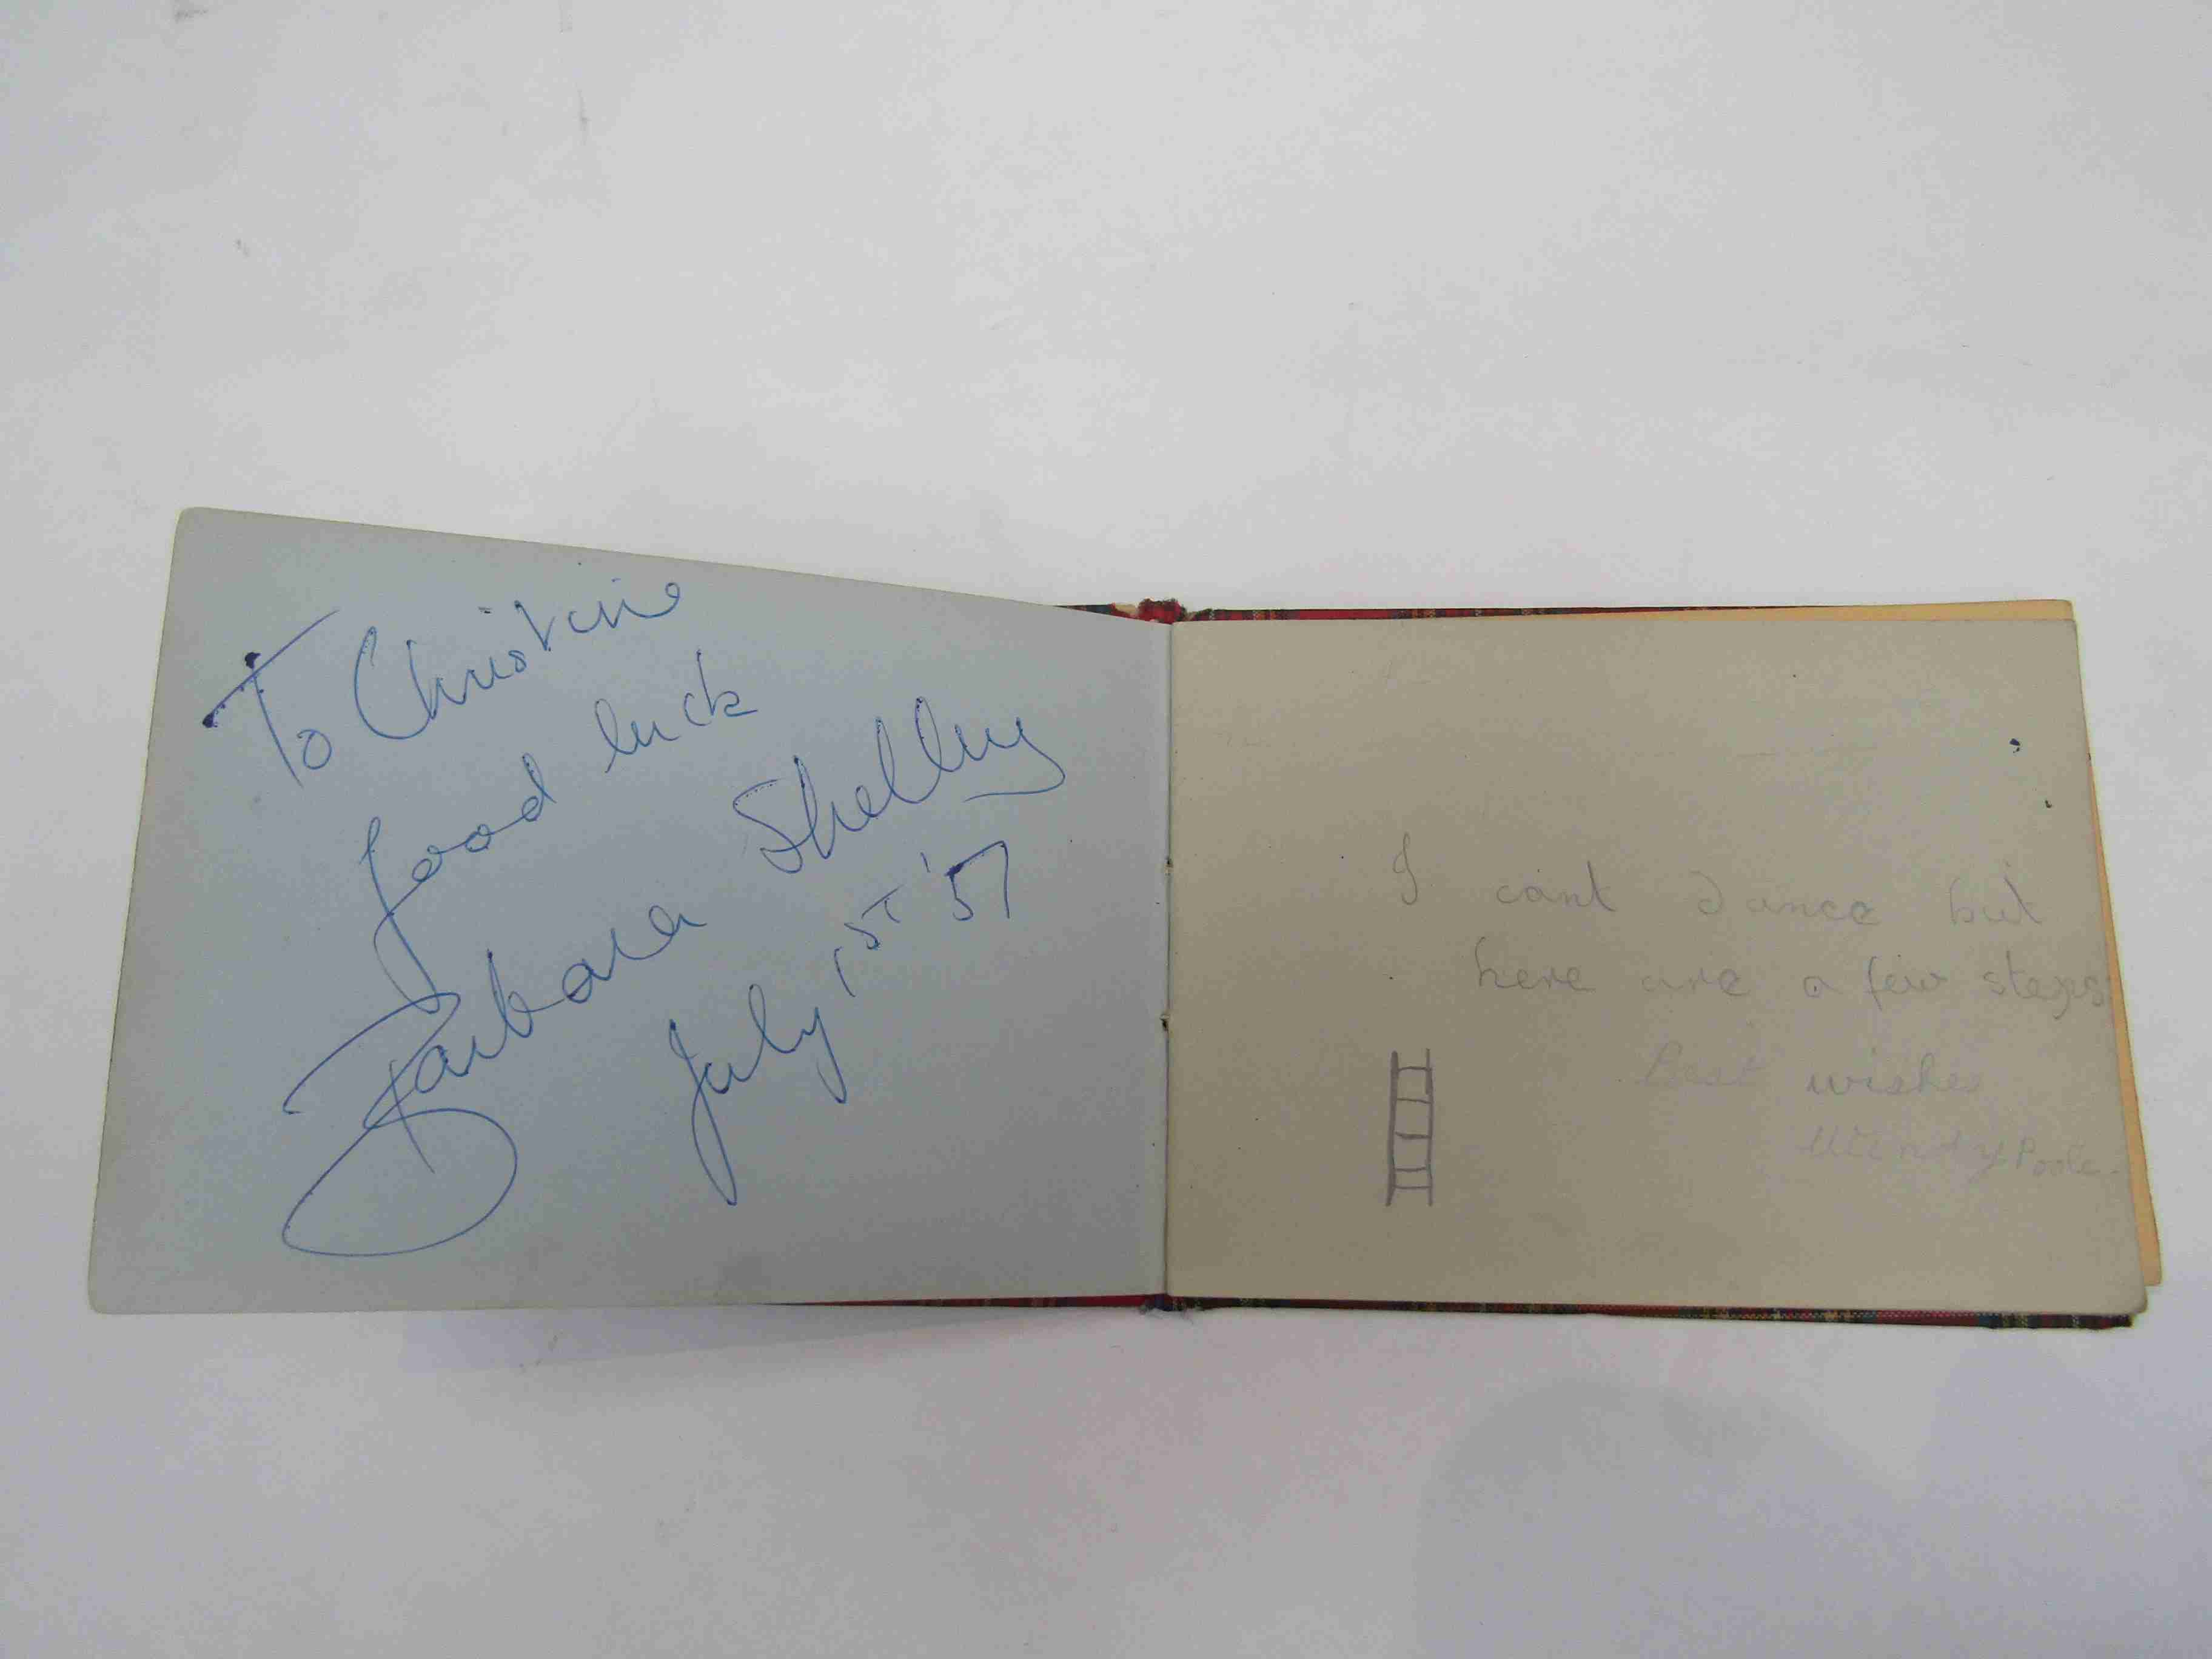 Two 1950s/60s autograph books containing autographs by Benny Hill, Honor Blackman, Barbara Shelley, - Image 17 of 34